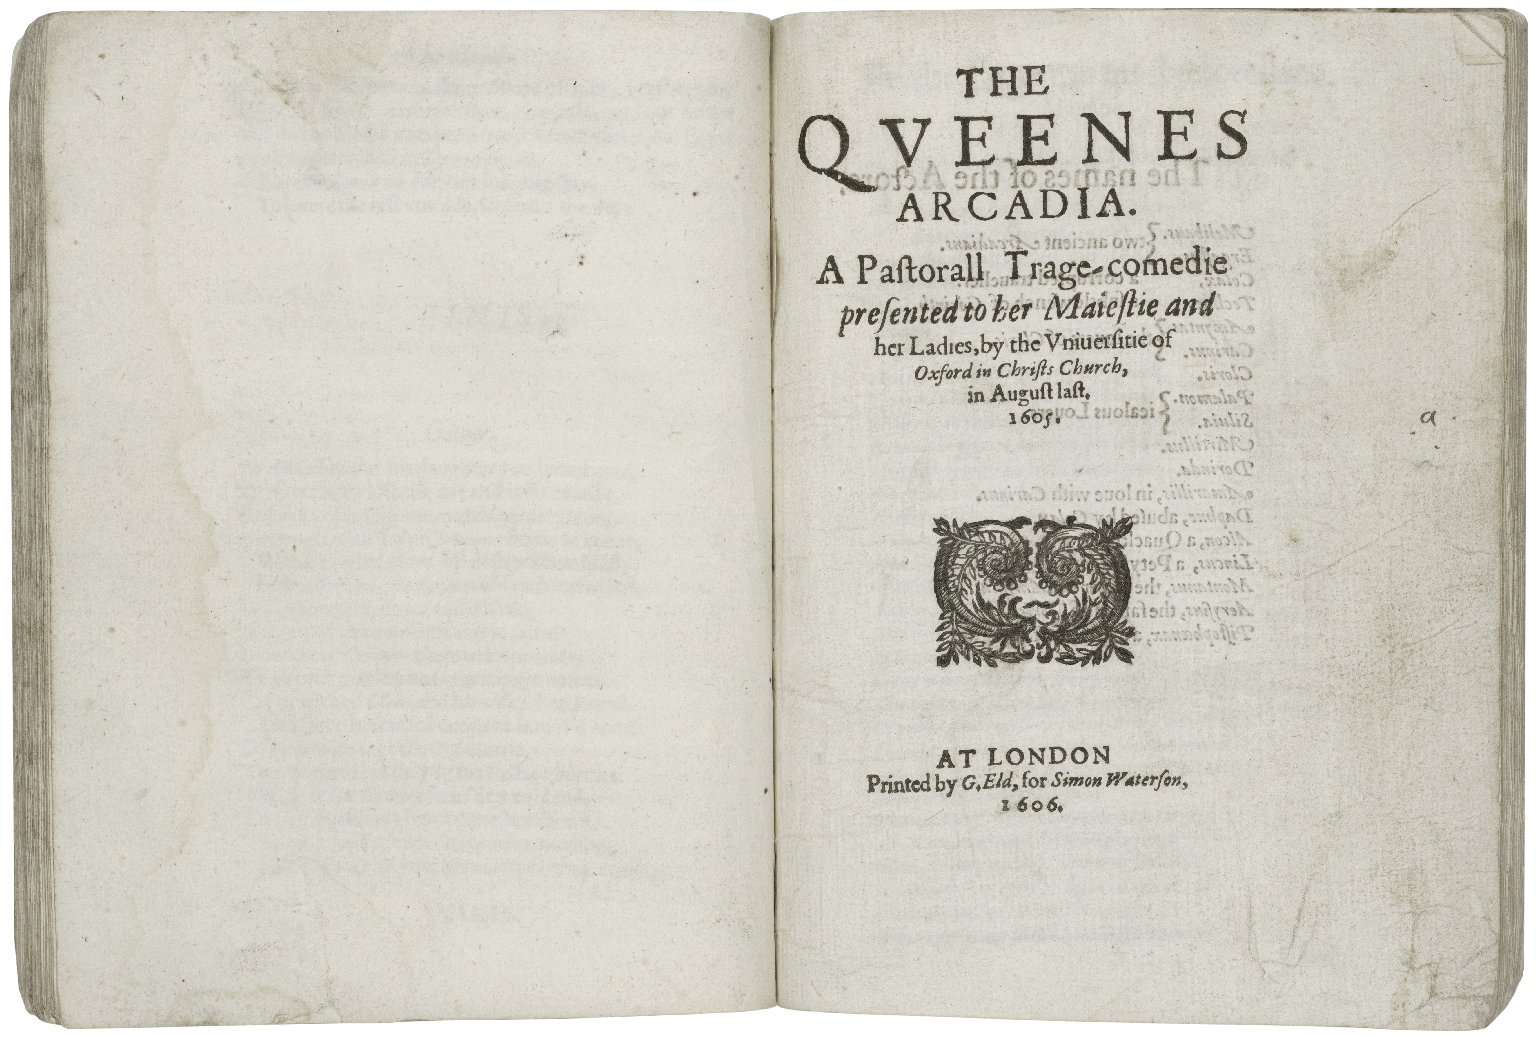 [Pericles] The late, and much admired play, called Pericles, Prince of Tyre. and The Queenes Arcadia.